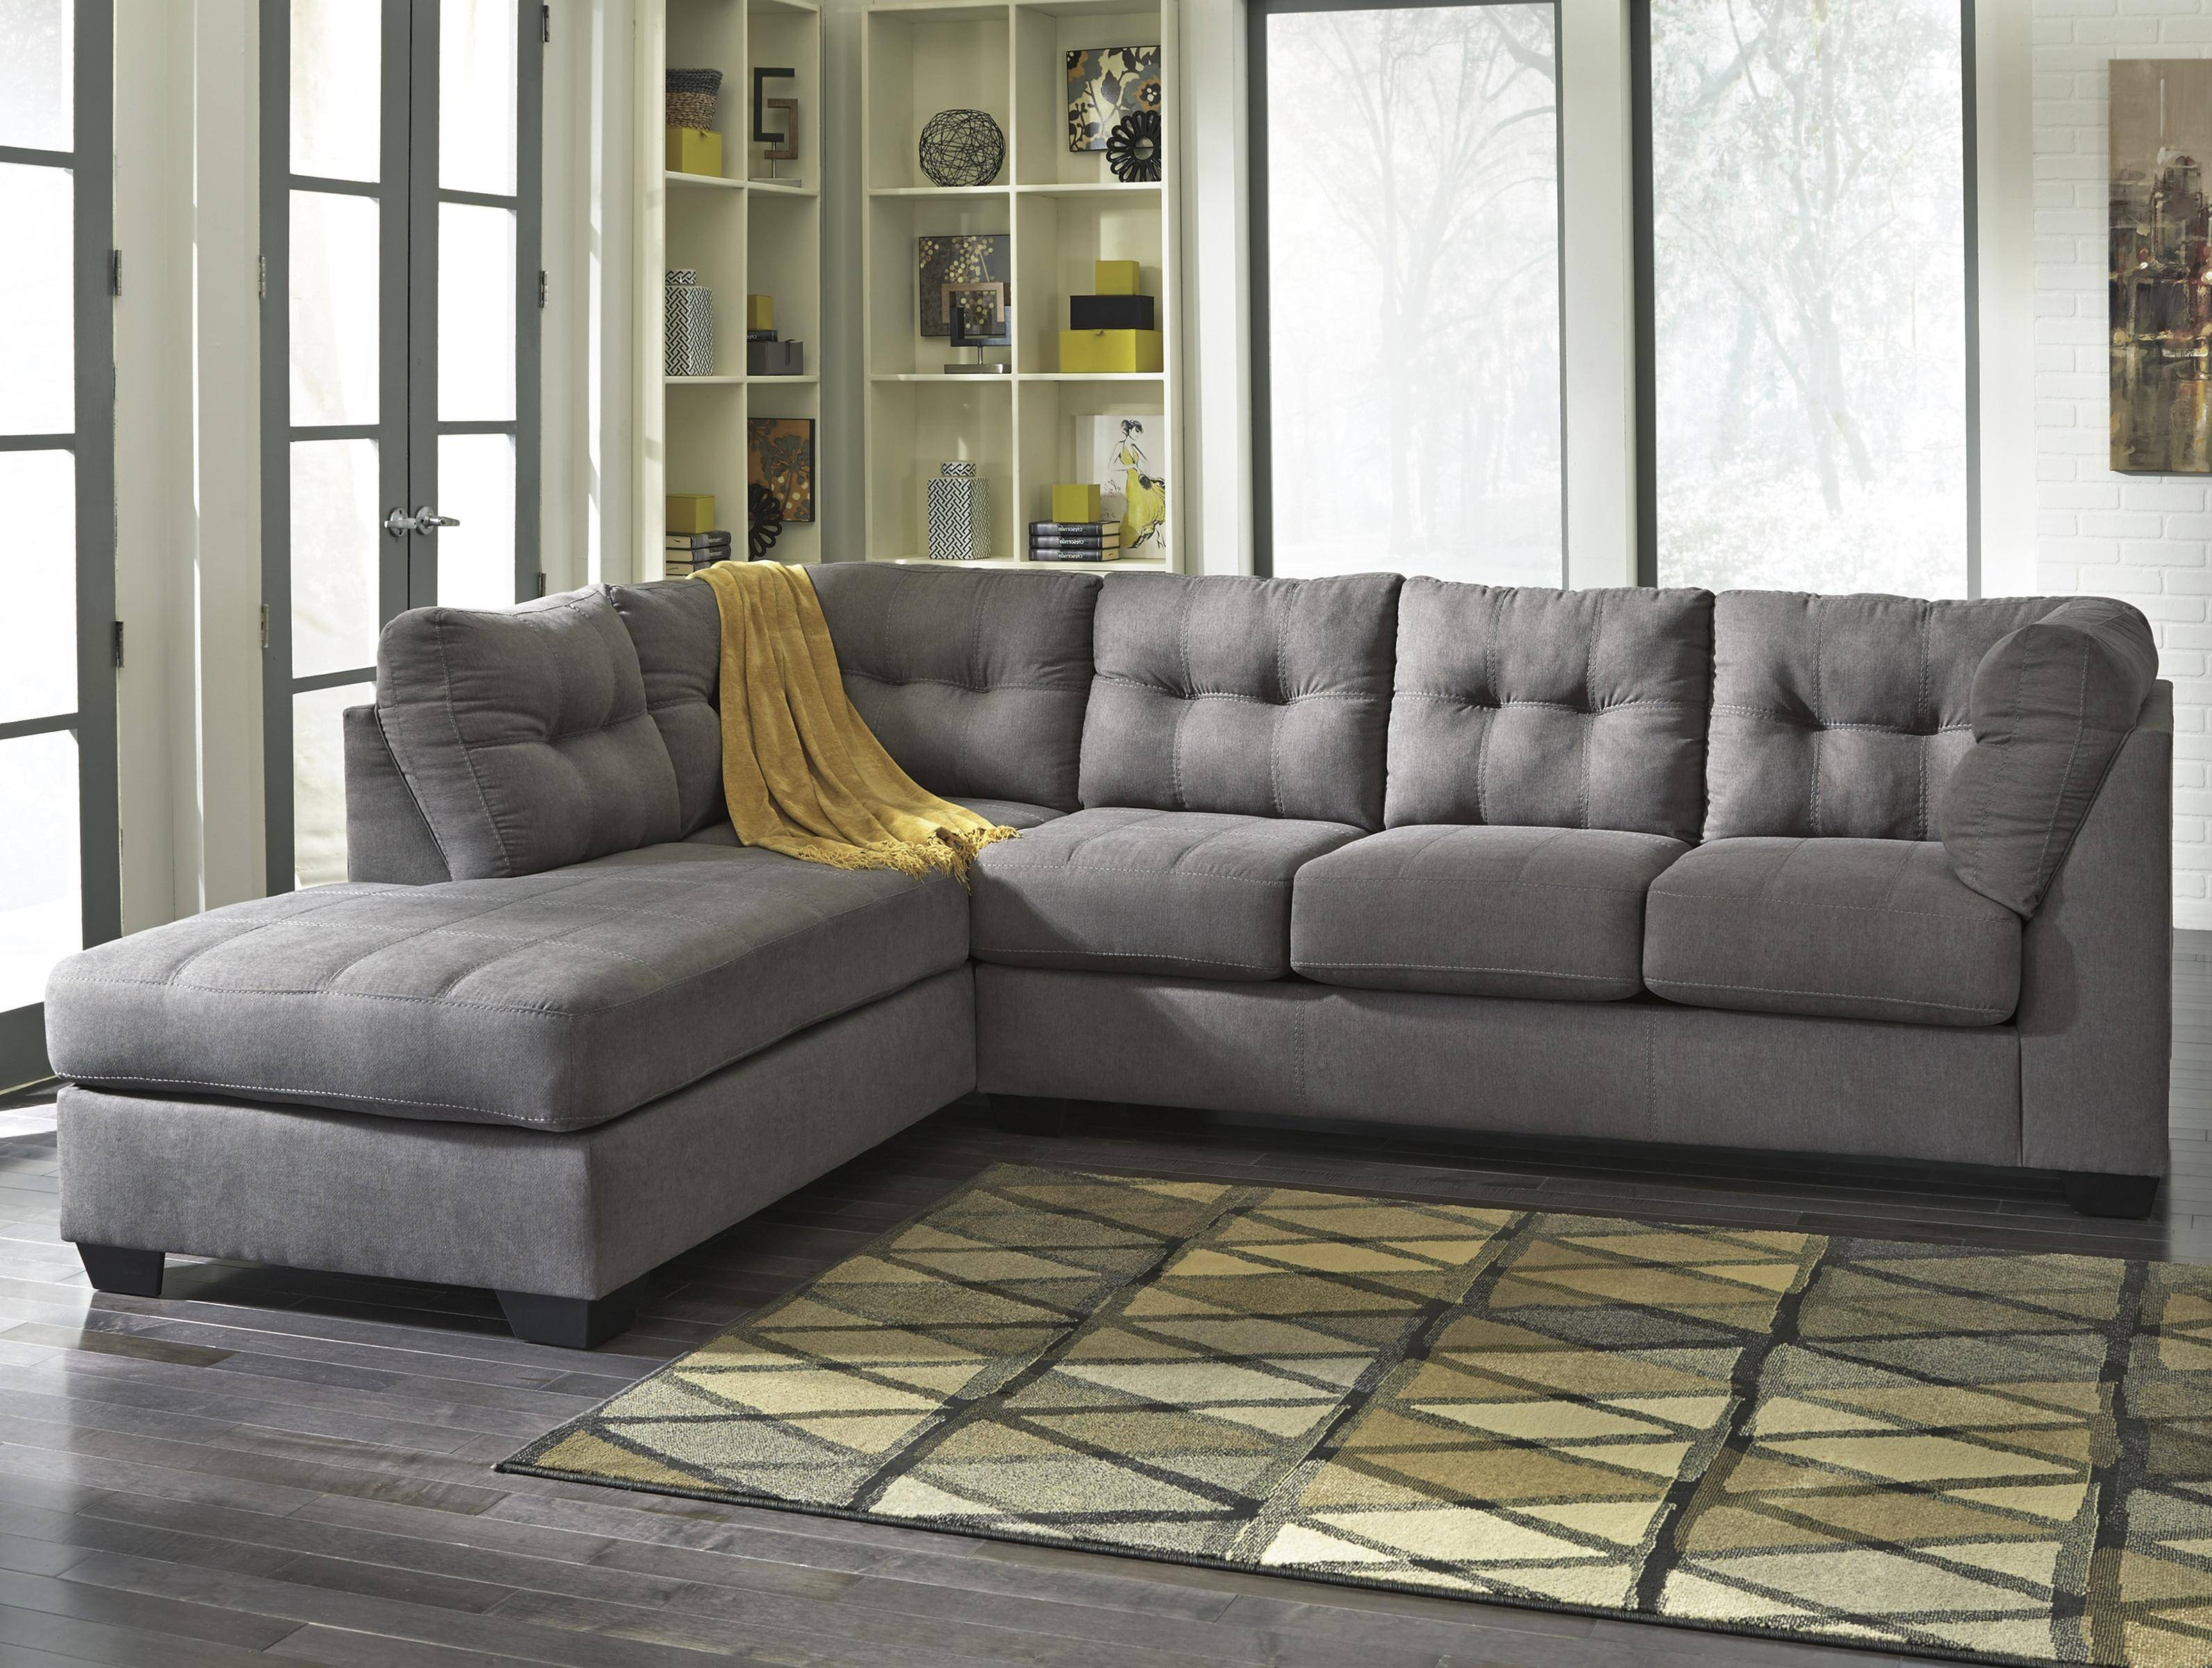 Benchcraft Maier - Charcoal 2-Piece Sectional W/ Sleeper Sofa within Sectional Sofas With Sleeper and Chaise (Image 4 of 30)